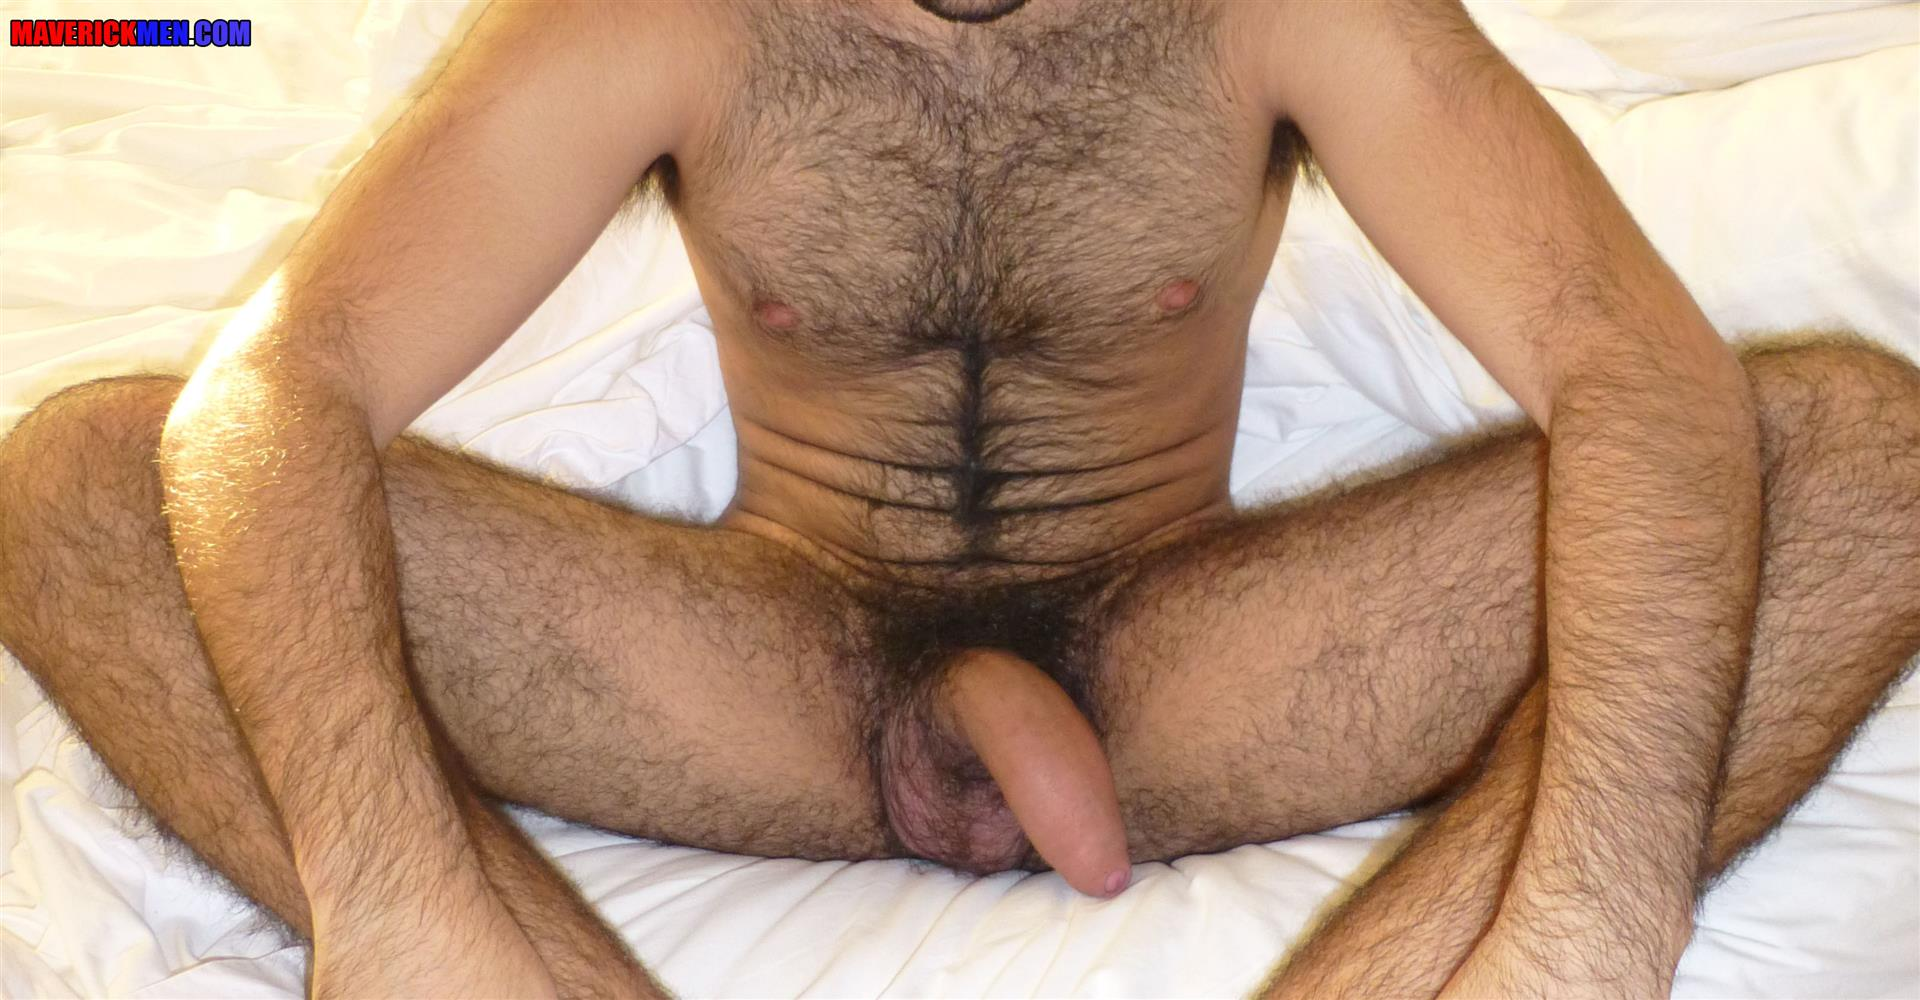 Maverick-Men-Little-Wolf-Hairy-Guy-With-Big-Uncut-Cock-Getting-Barebacked-By-Two-Daddies-Gay-Porn-09 Hairy Ass Young Guy Getting Barebacked By The Maverick Men